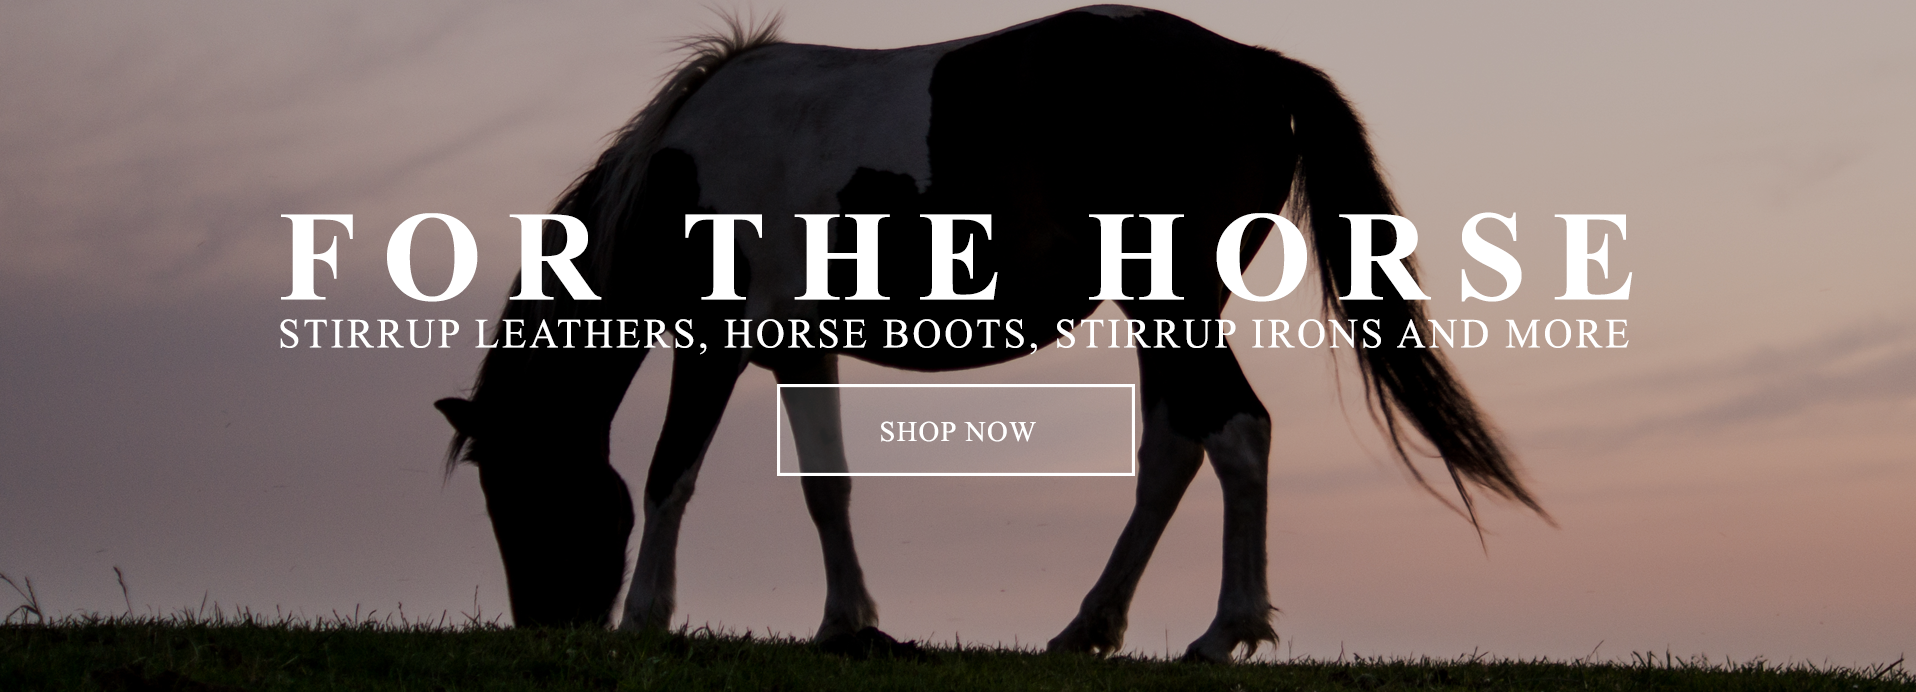 For The Horse - Stirrup Leathers, Horse Boots, Stirrup Irons and More